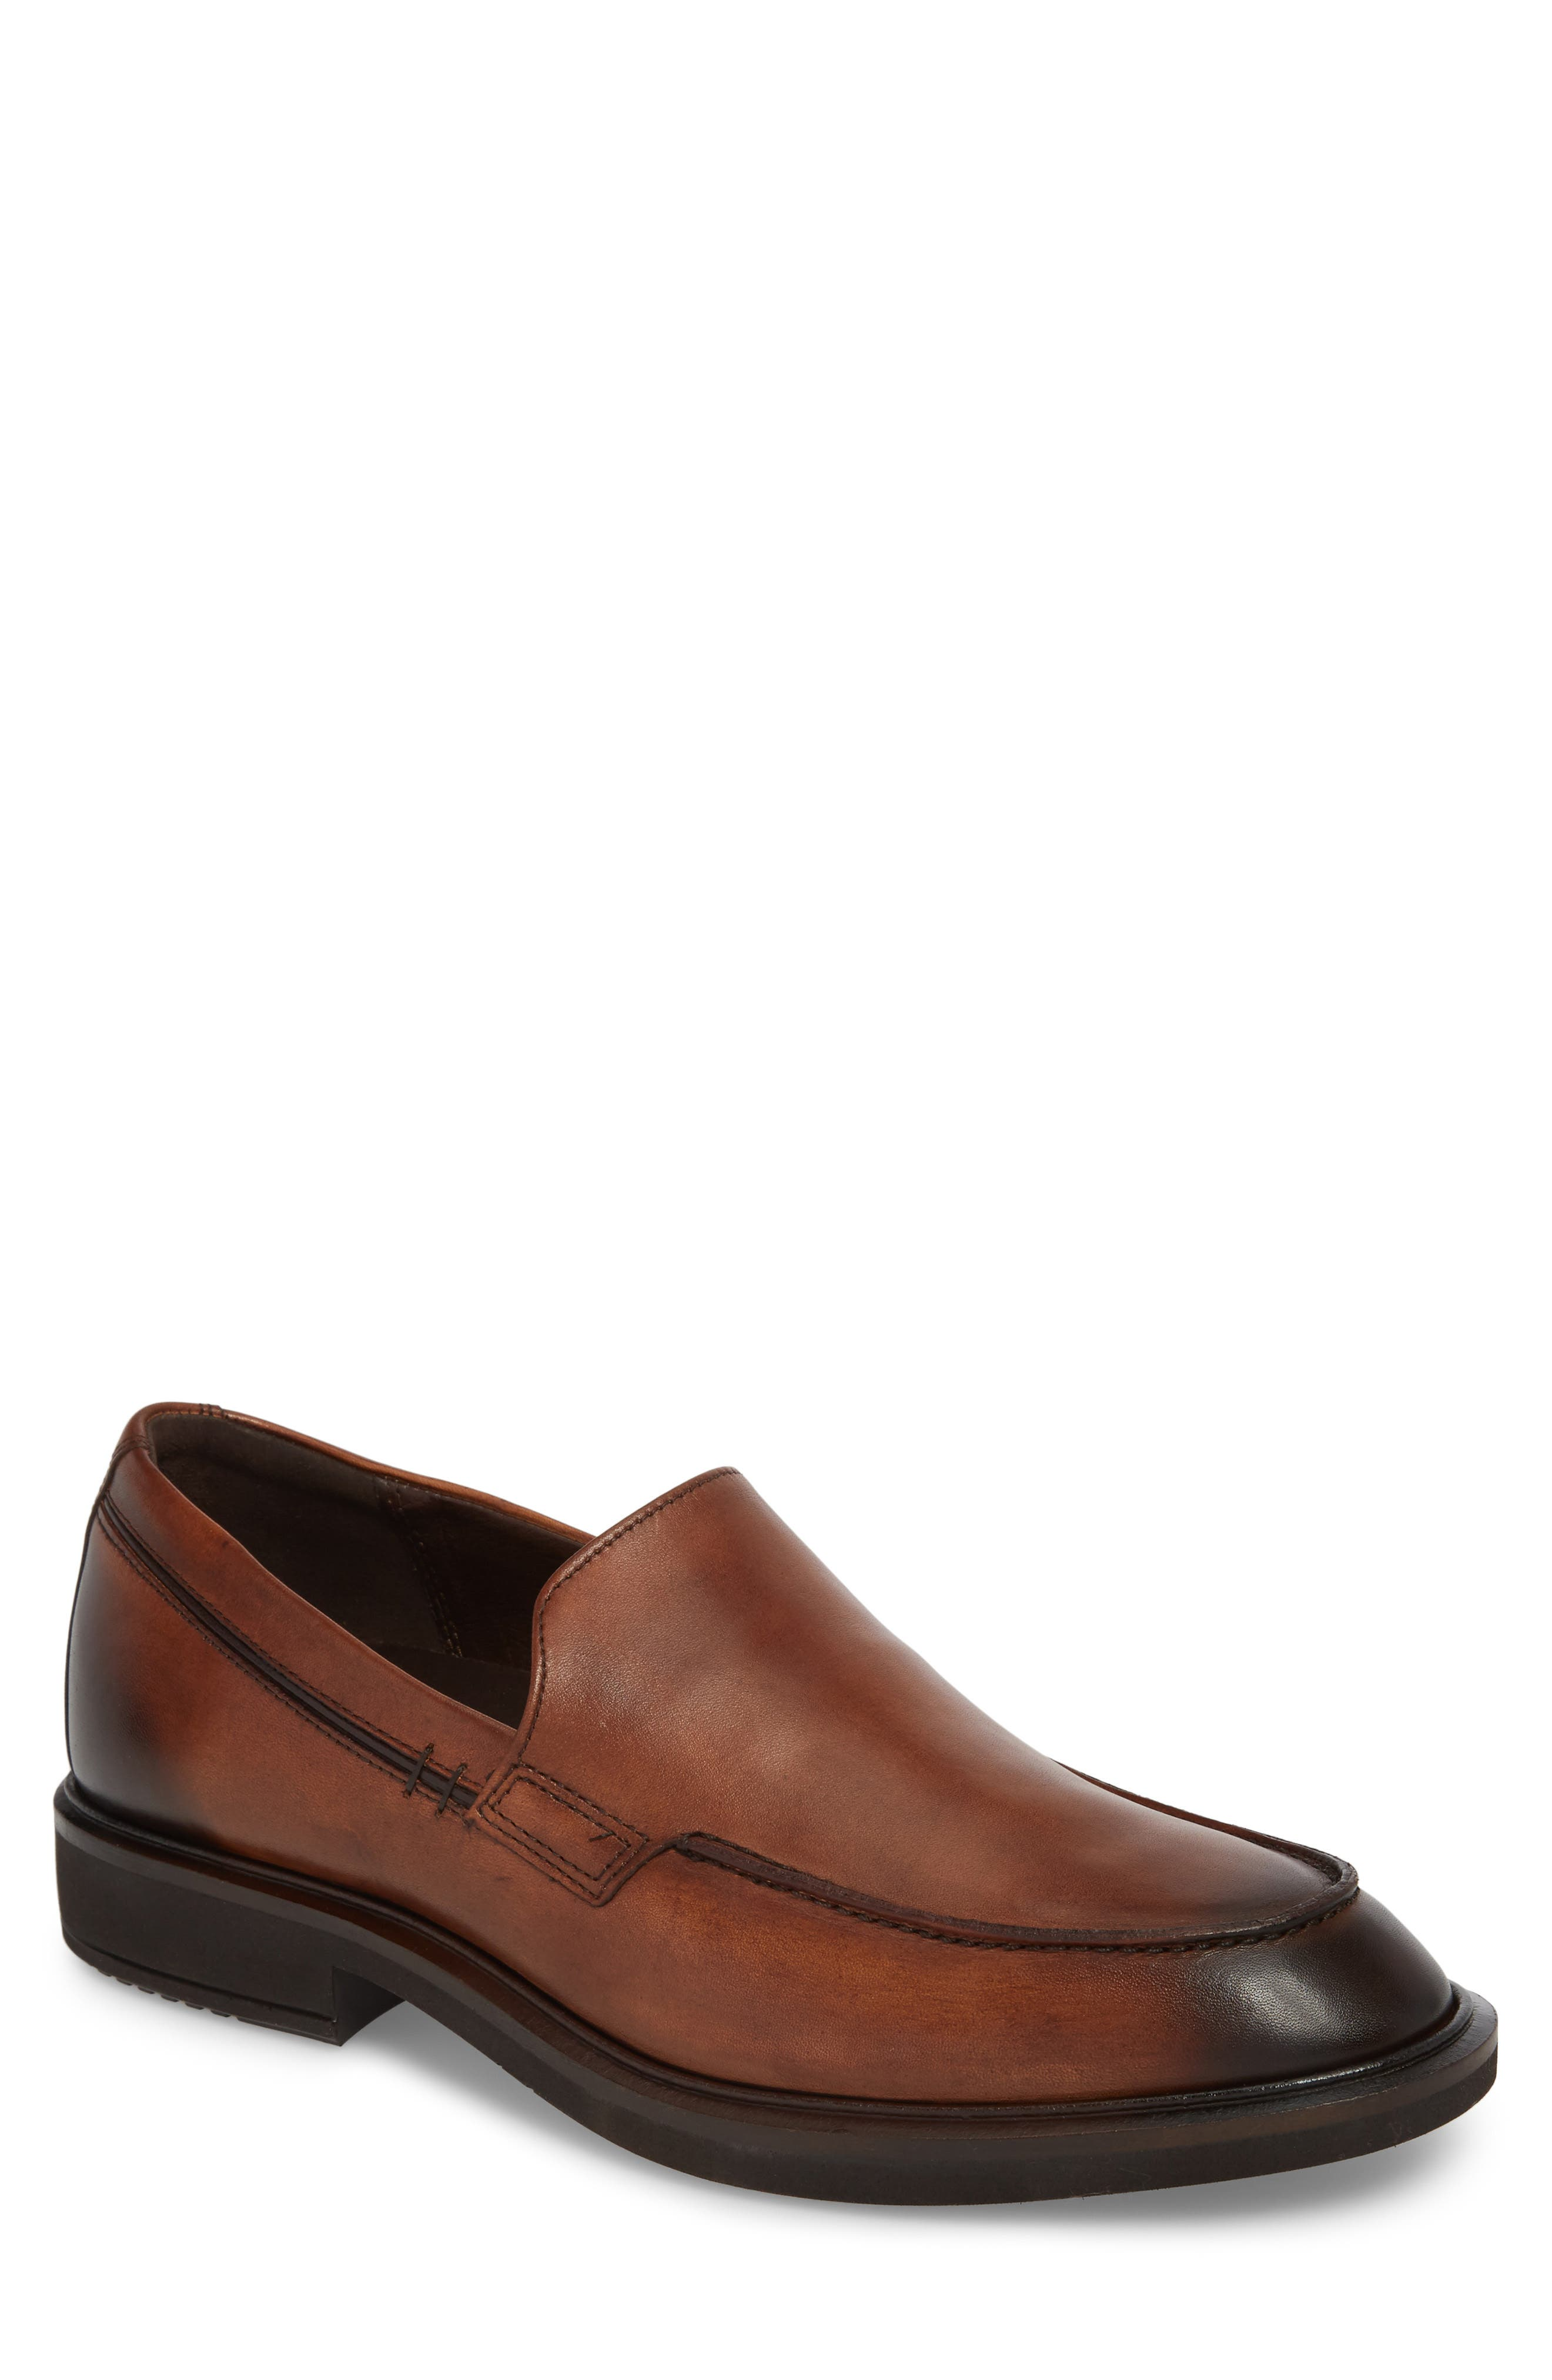 Alternate Image 1 Selected - ECCO Vitrus II Apron Toe Loafer (Men)